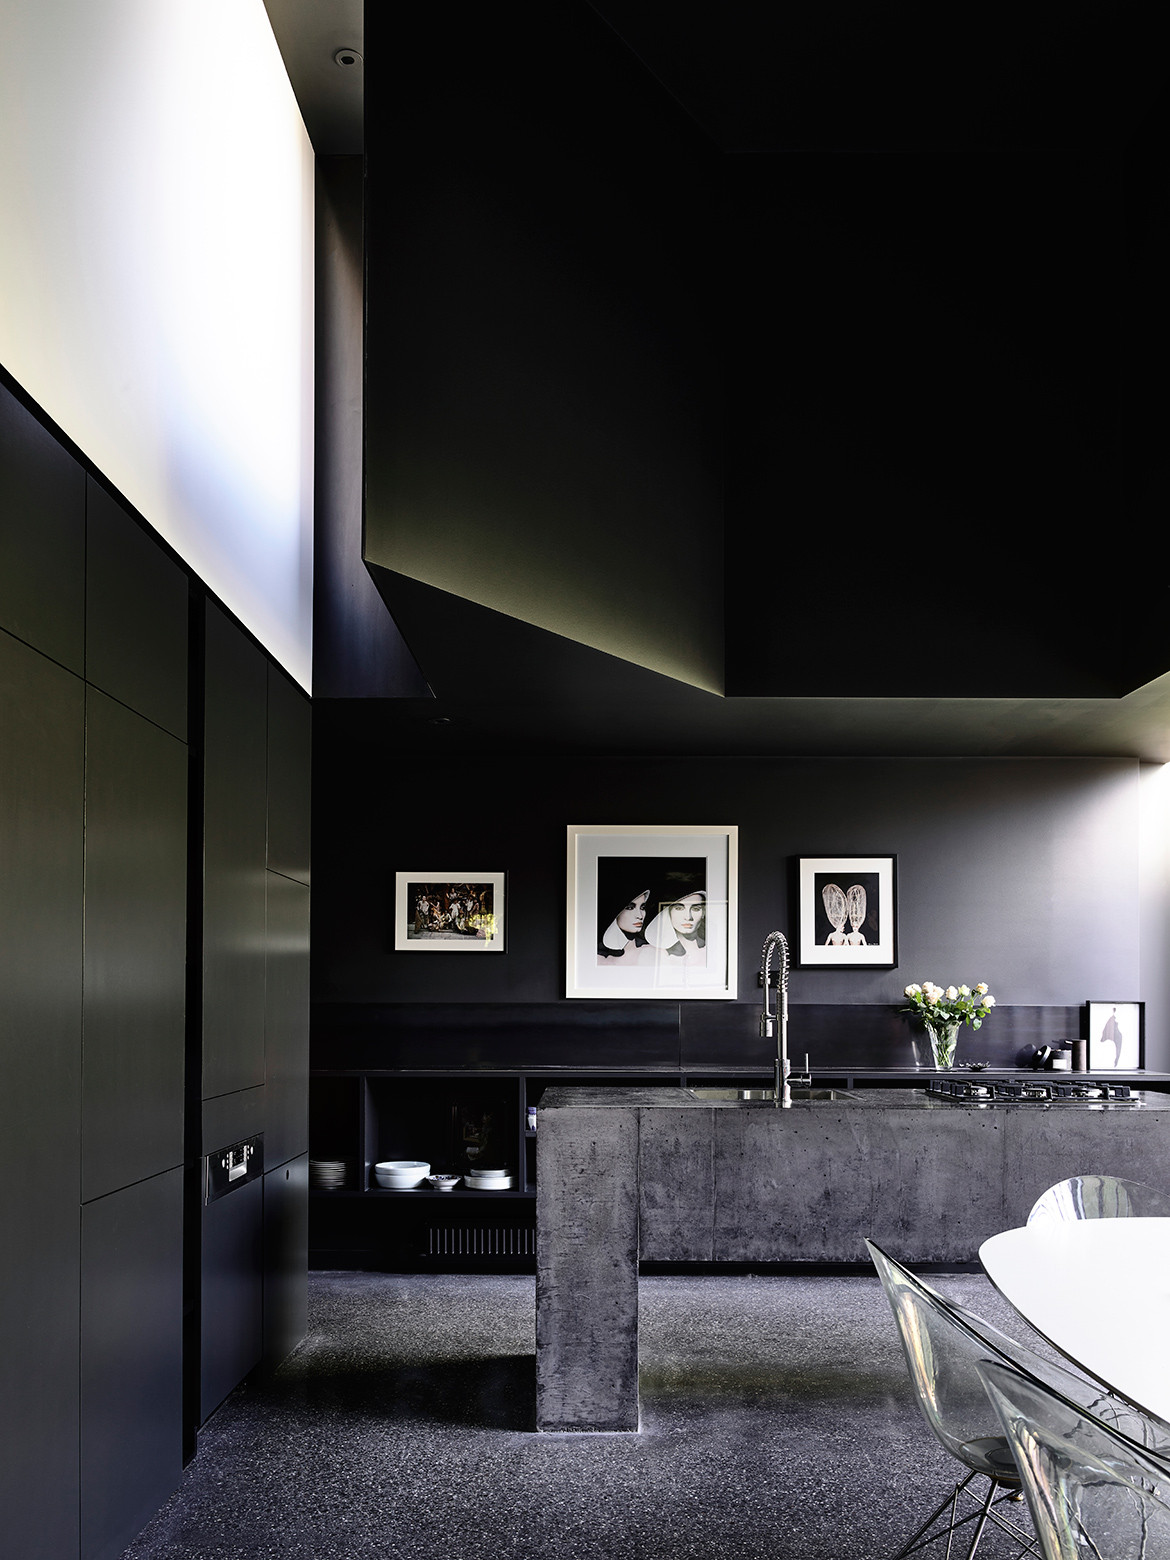 Powell Street House's kitchen design by Robert Simeoni has the aesthetic of an art gallery with the work of fashion photographer Robyn Beeche on display.